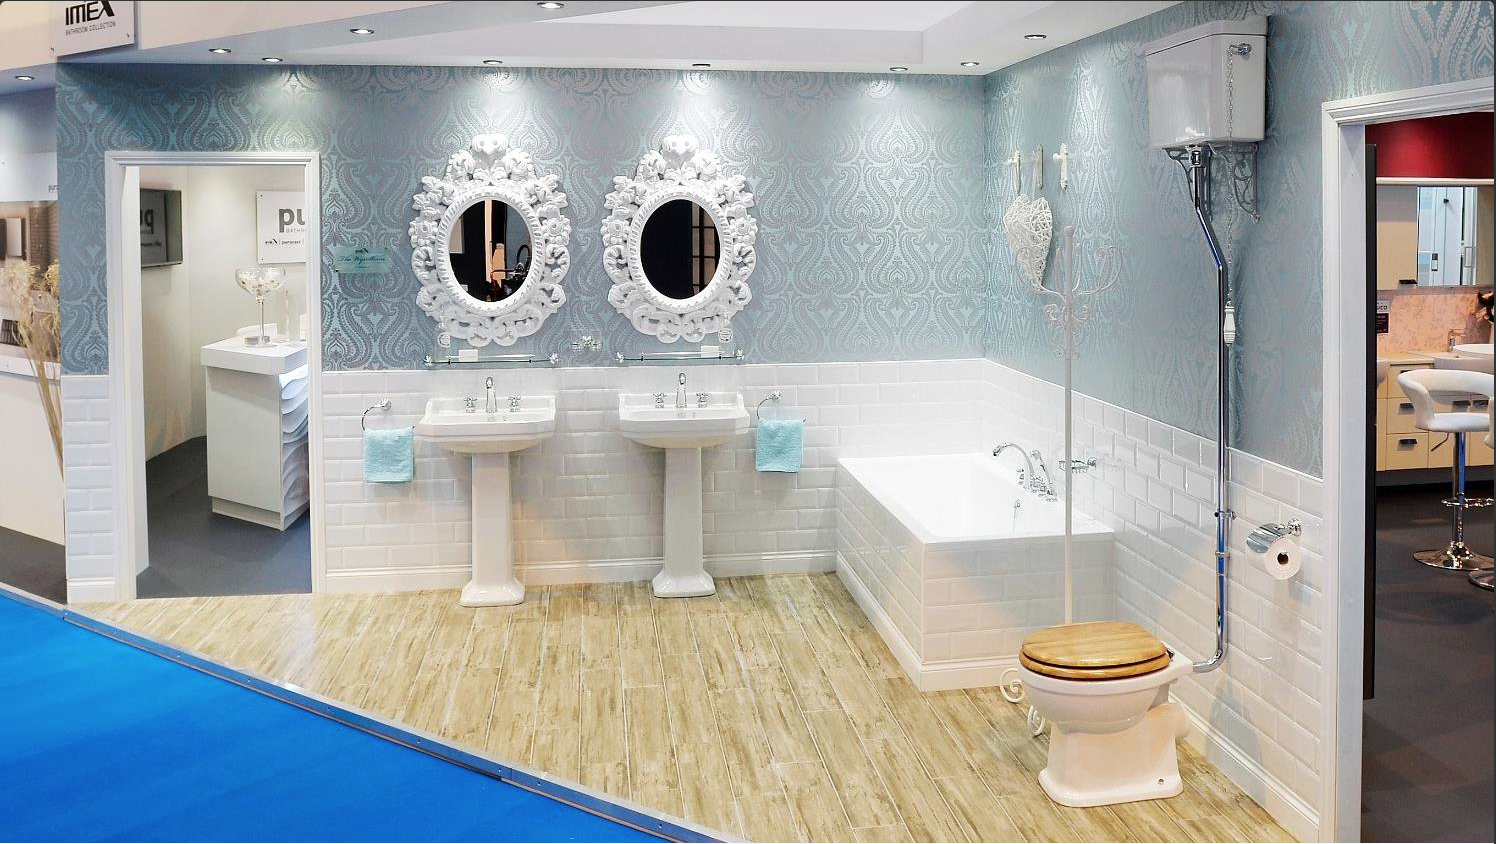 This beautiful display was shown in the kbb exhibition back in March. Inspired by a bygone era of the Edwardians or late Victorians, the Wyndham range has all the style and elegance you'd expect, but with the precision engineering of the 21st century. This classic bathroom style will fit seamlessly into a modern or traditional bathroom setting #trulyinspirational #design #deuco #deuco #imex #pura #flova #puracast